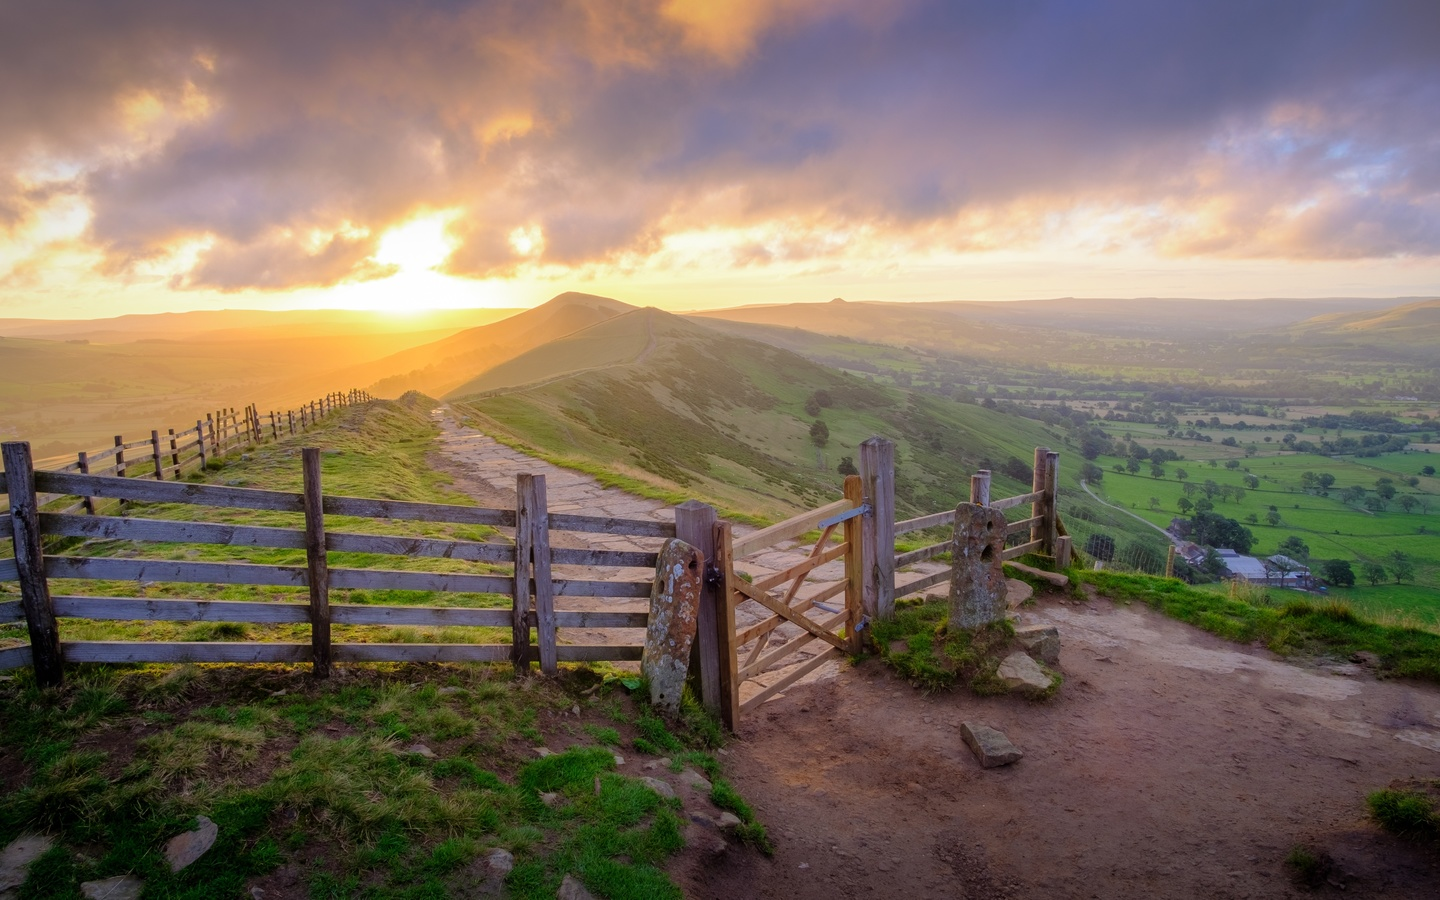 англия, peak-district, national park, derbyshire, забор, трава, холмы, горизонт, природа